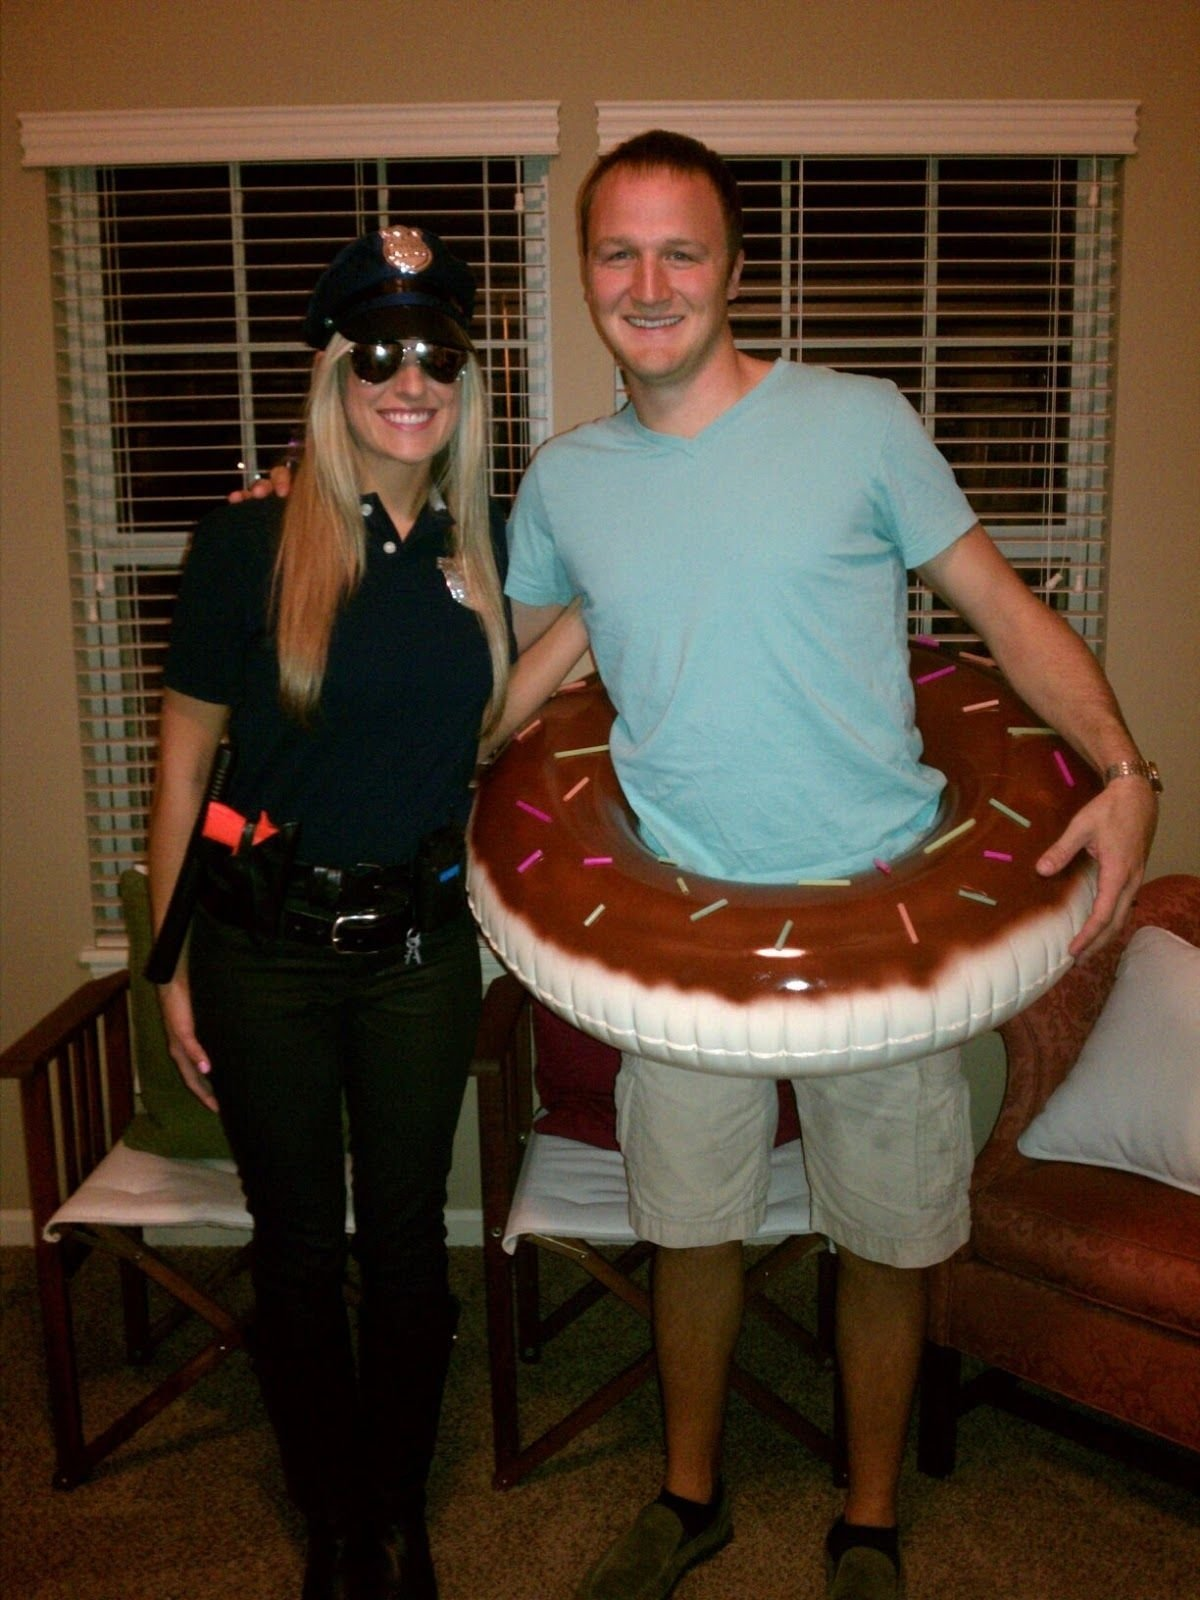 10 Most Recommended Couples Homemade Halloween Costume Ideas cop and donut tired of the sexy policewoman costume bring a whole 7 2021